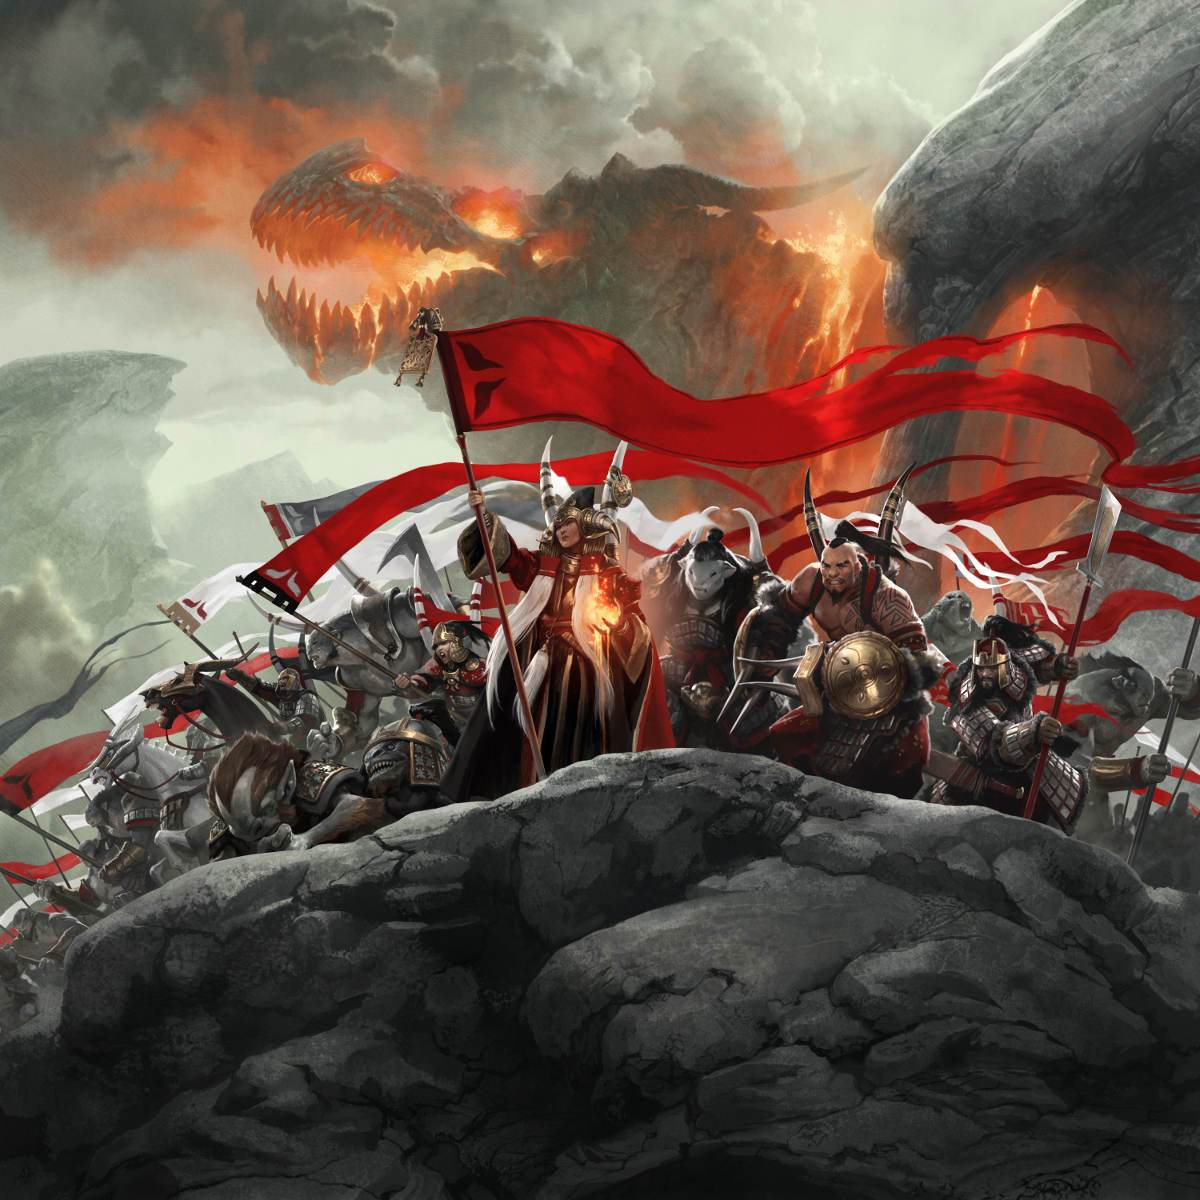 Mardu Ascendancy Print - Print - Original Magic Art - Accessories for Magic the Gathering and other card games